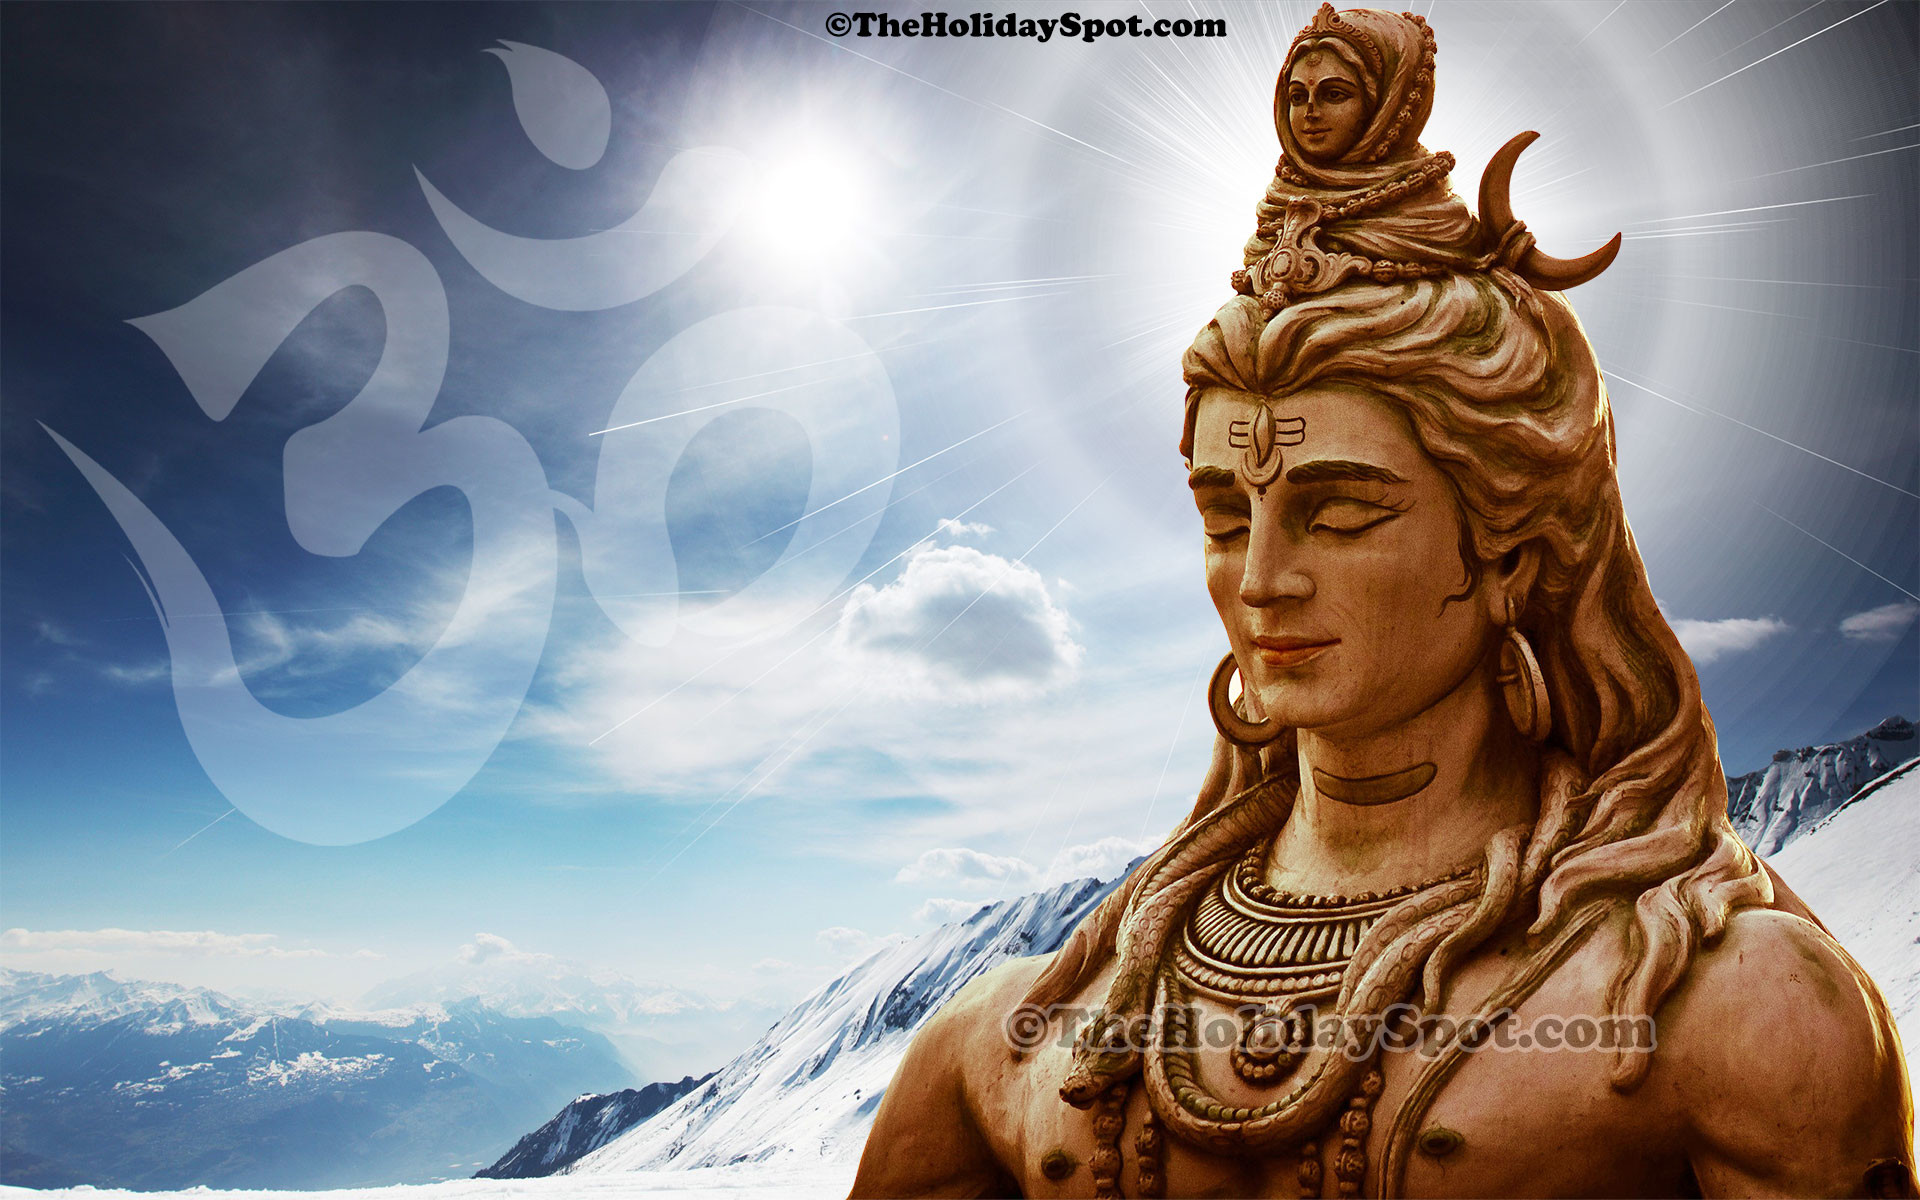 Lord Shiva Full Hd 1080p Photo: Lord Shiva Wallpapers High Resolution (73+ Images